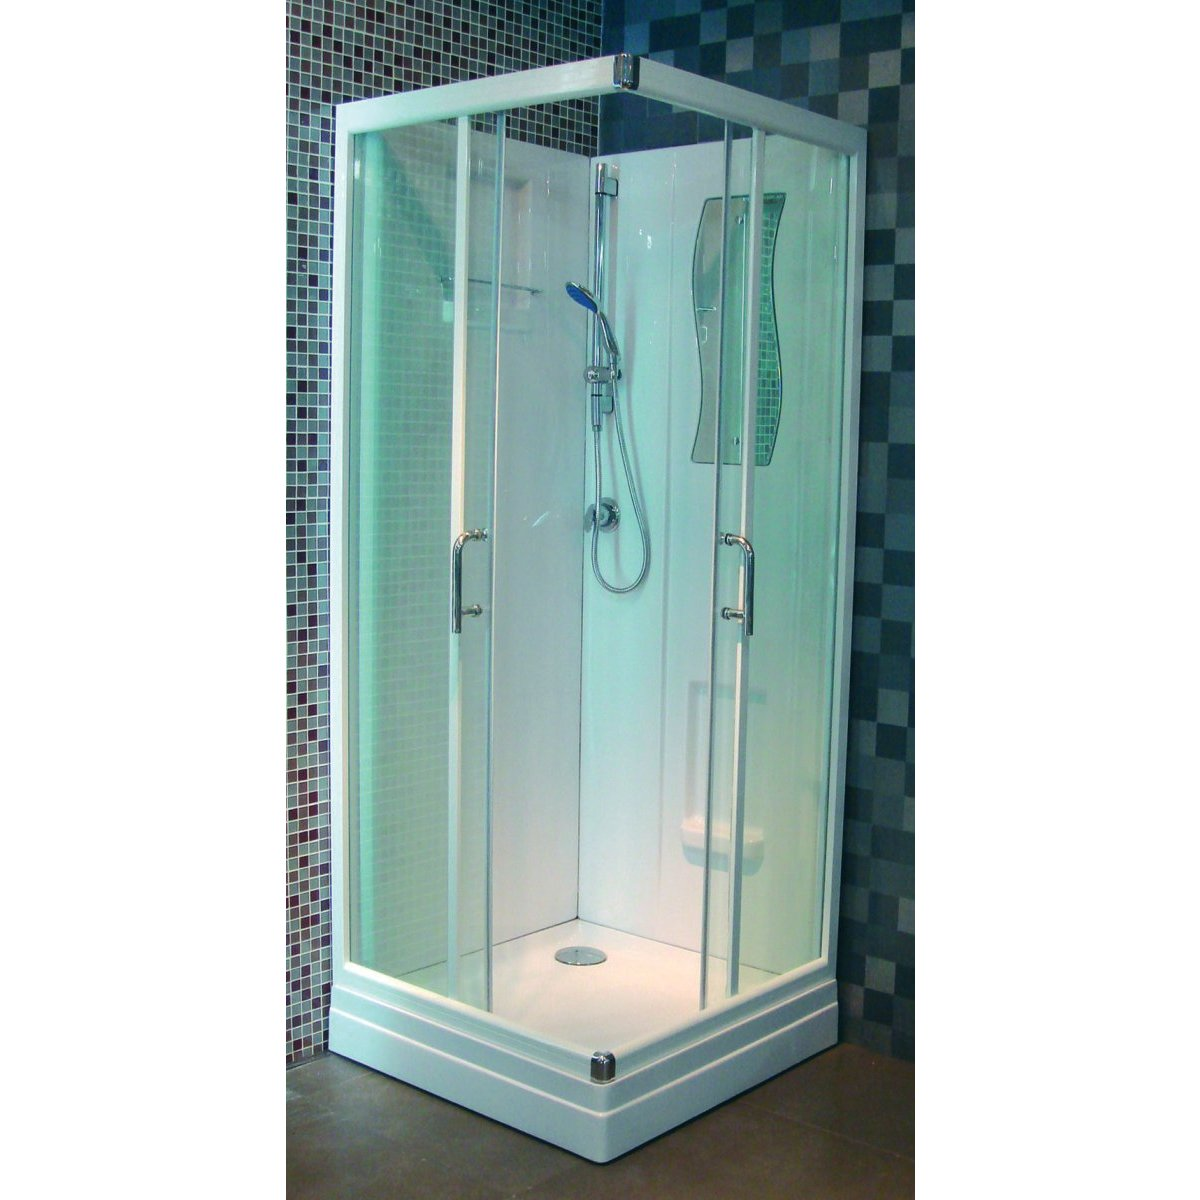 cabine de douche concerto 90 x 90 cm acc s d 39 angle porte. Black Bedroom Furniture Sets. Home Design Ideas